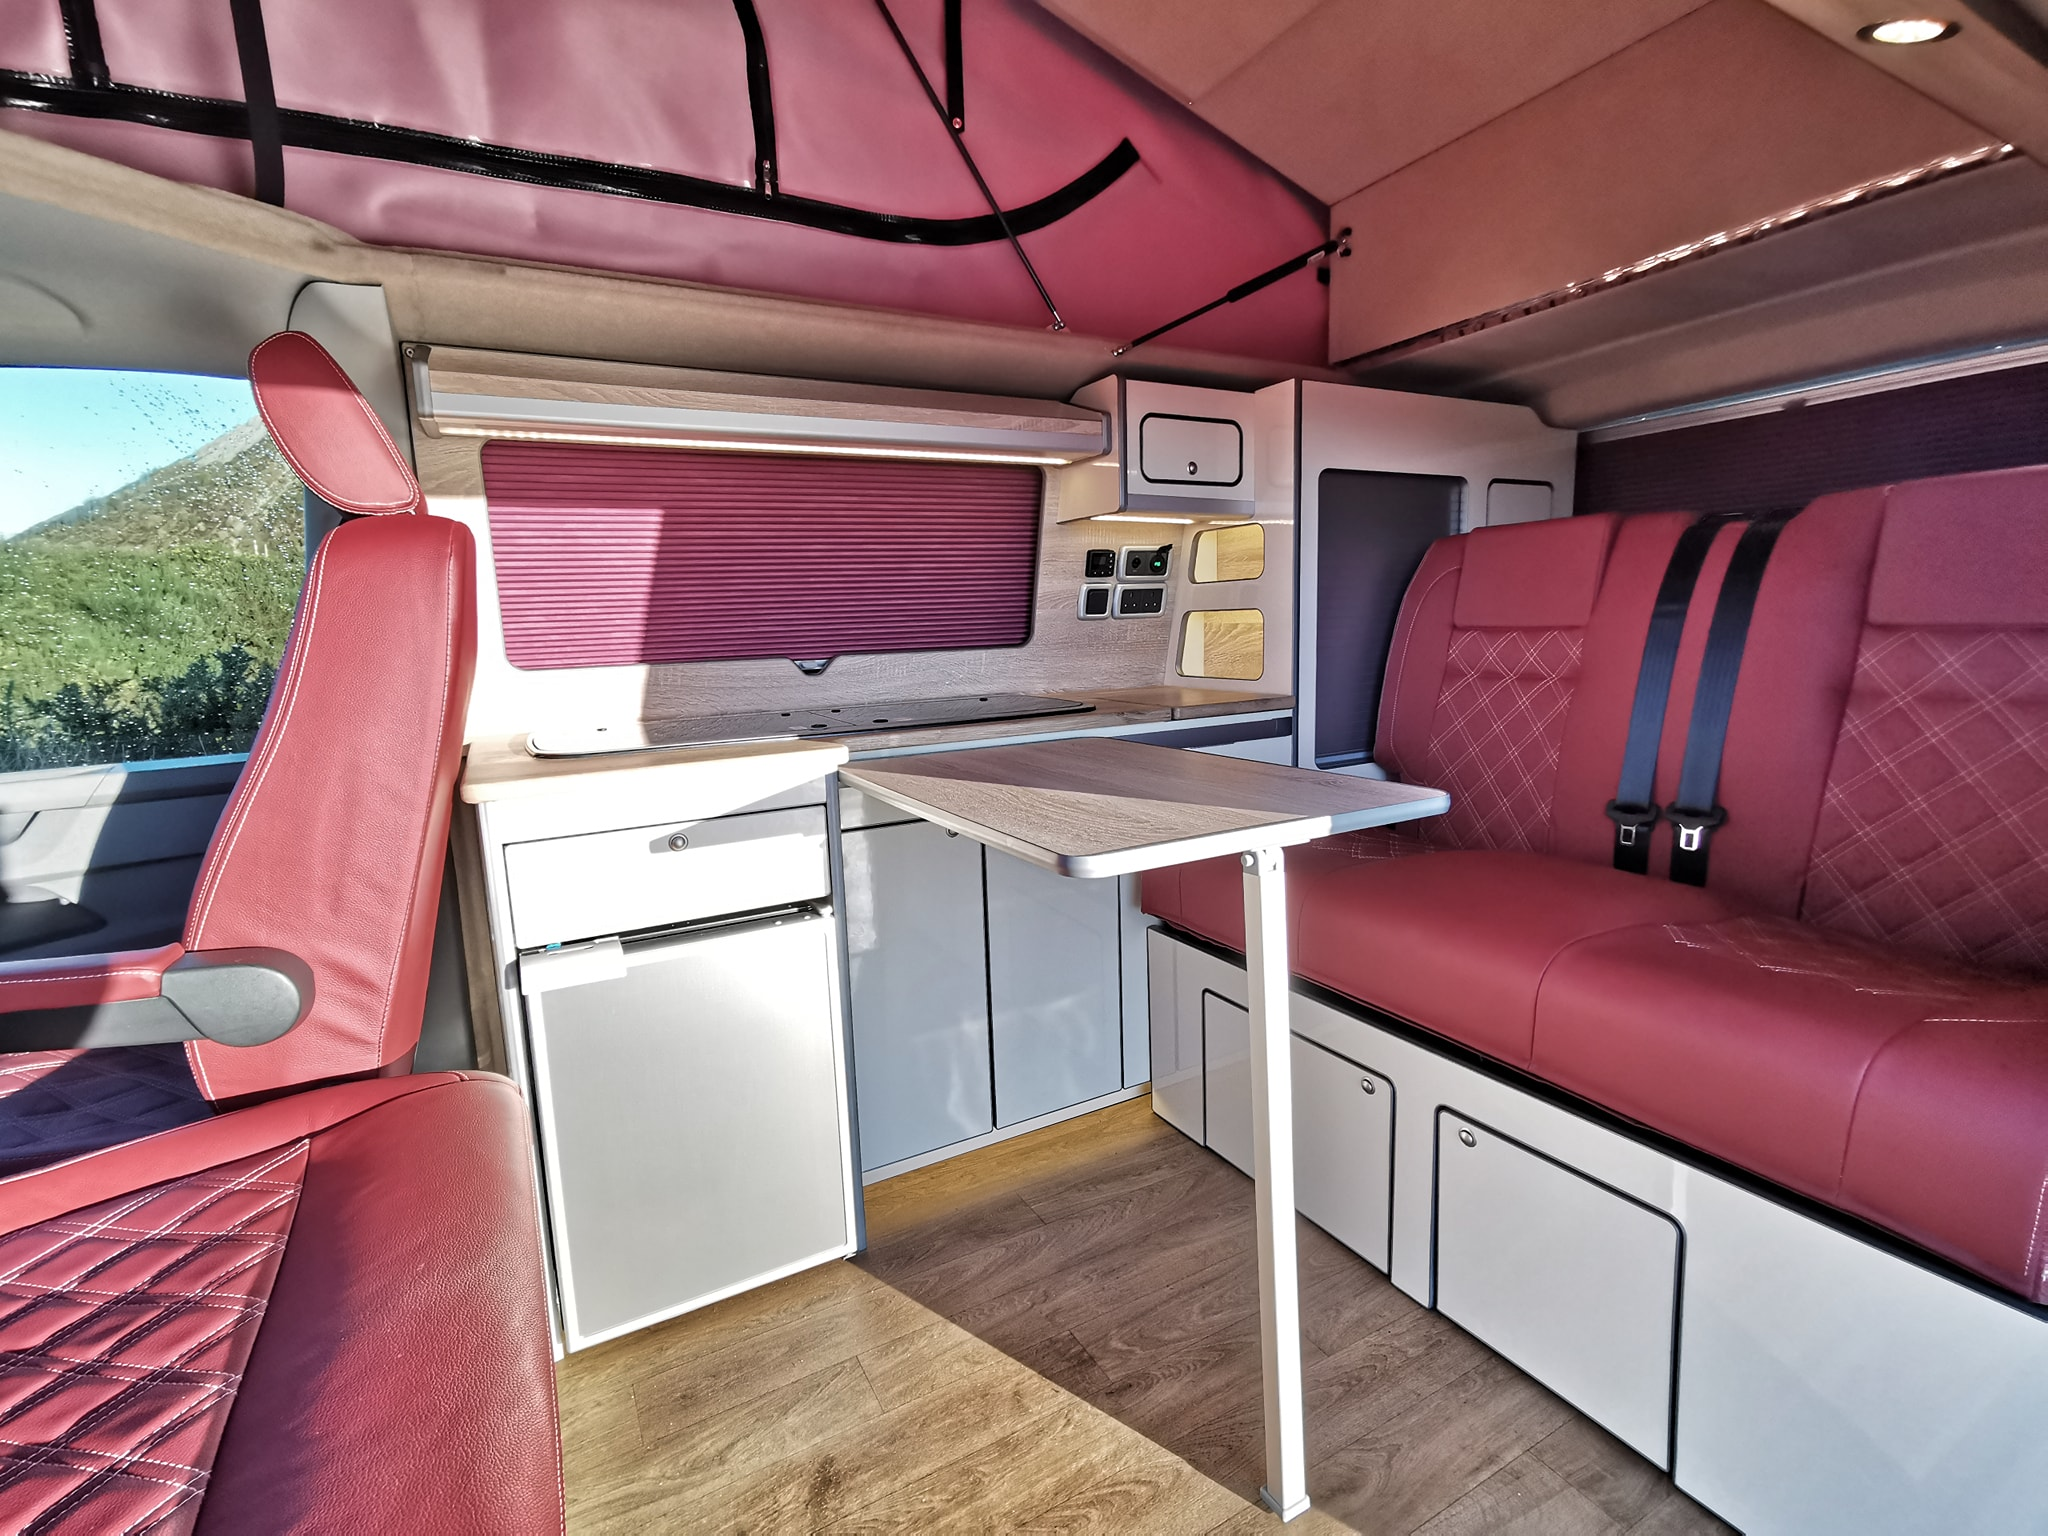 Red leather seats inside a campervan conversion